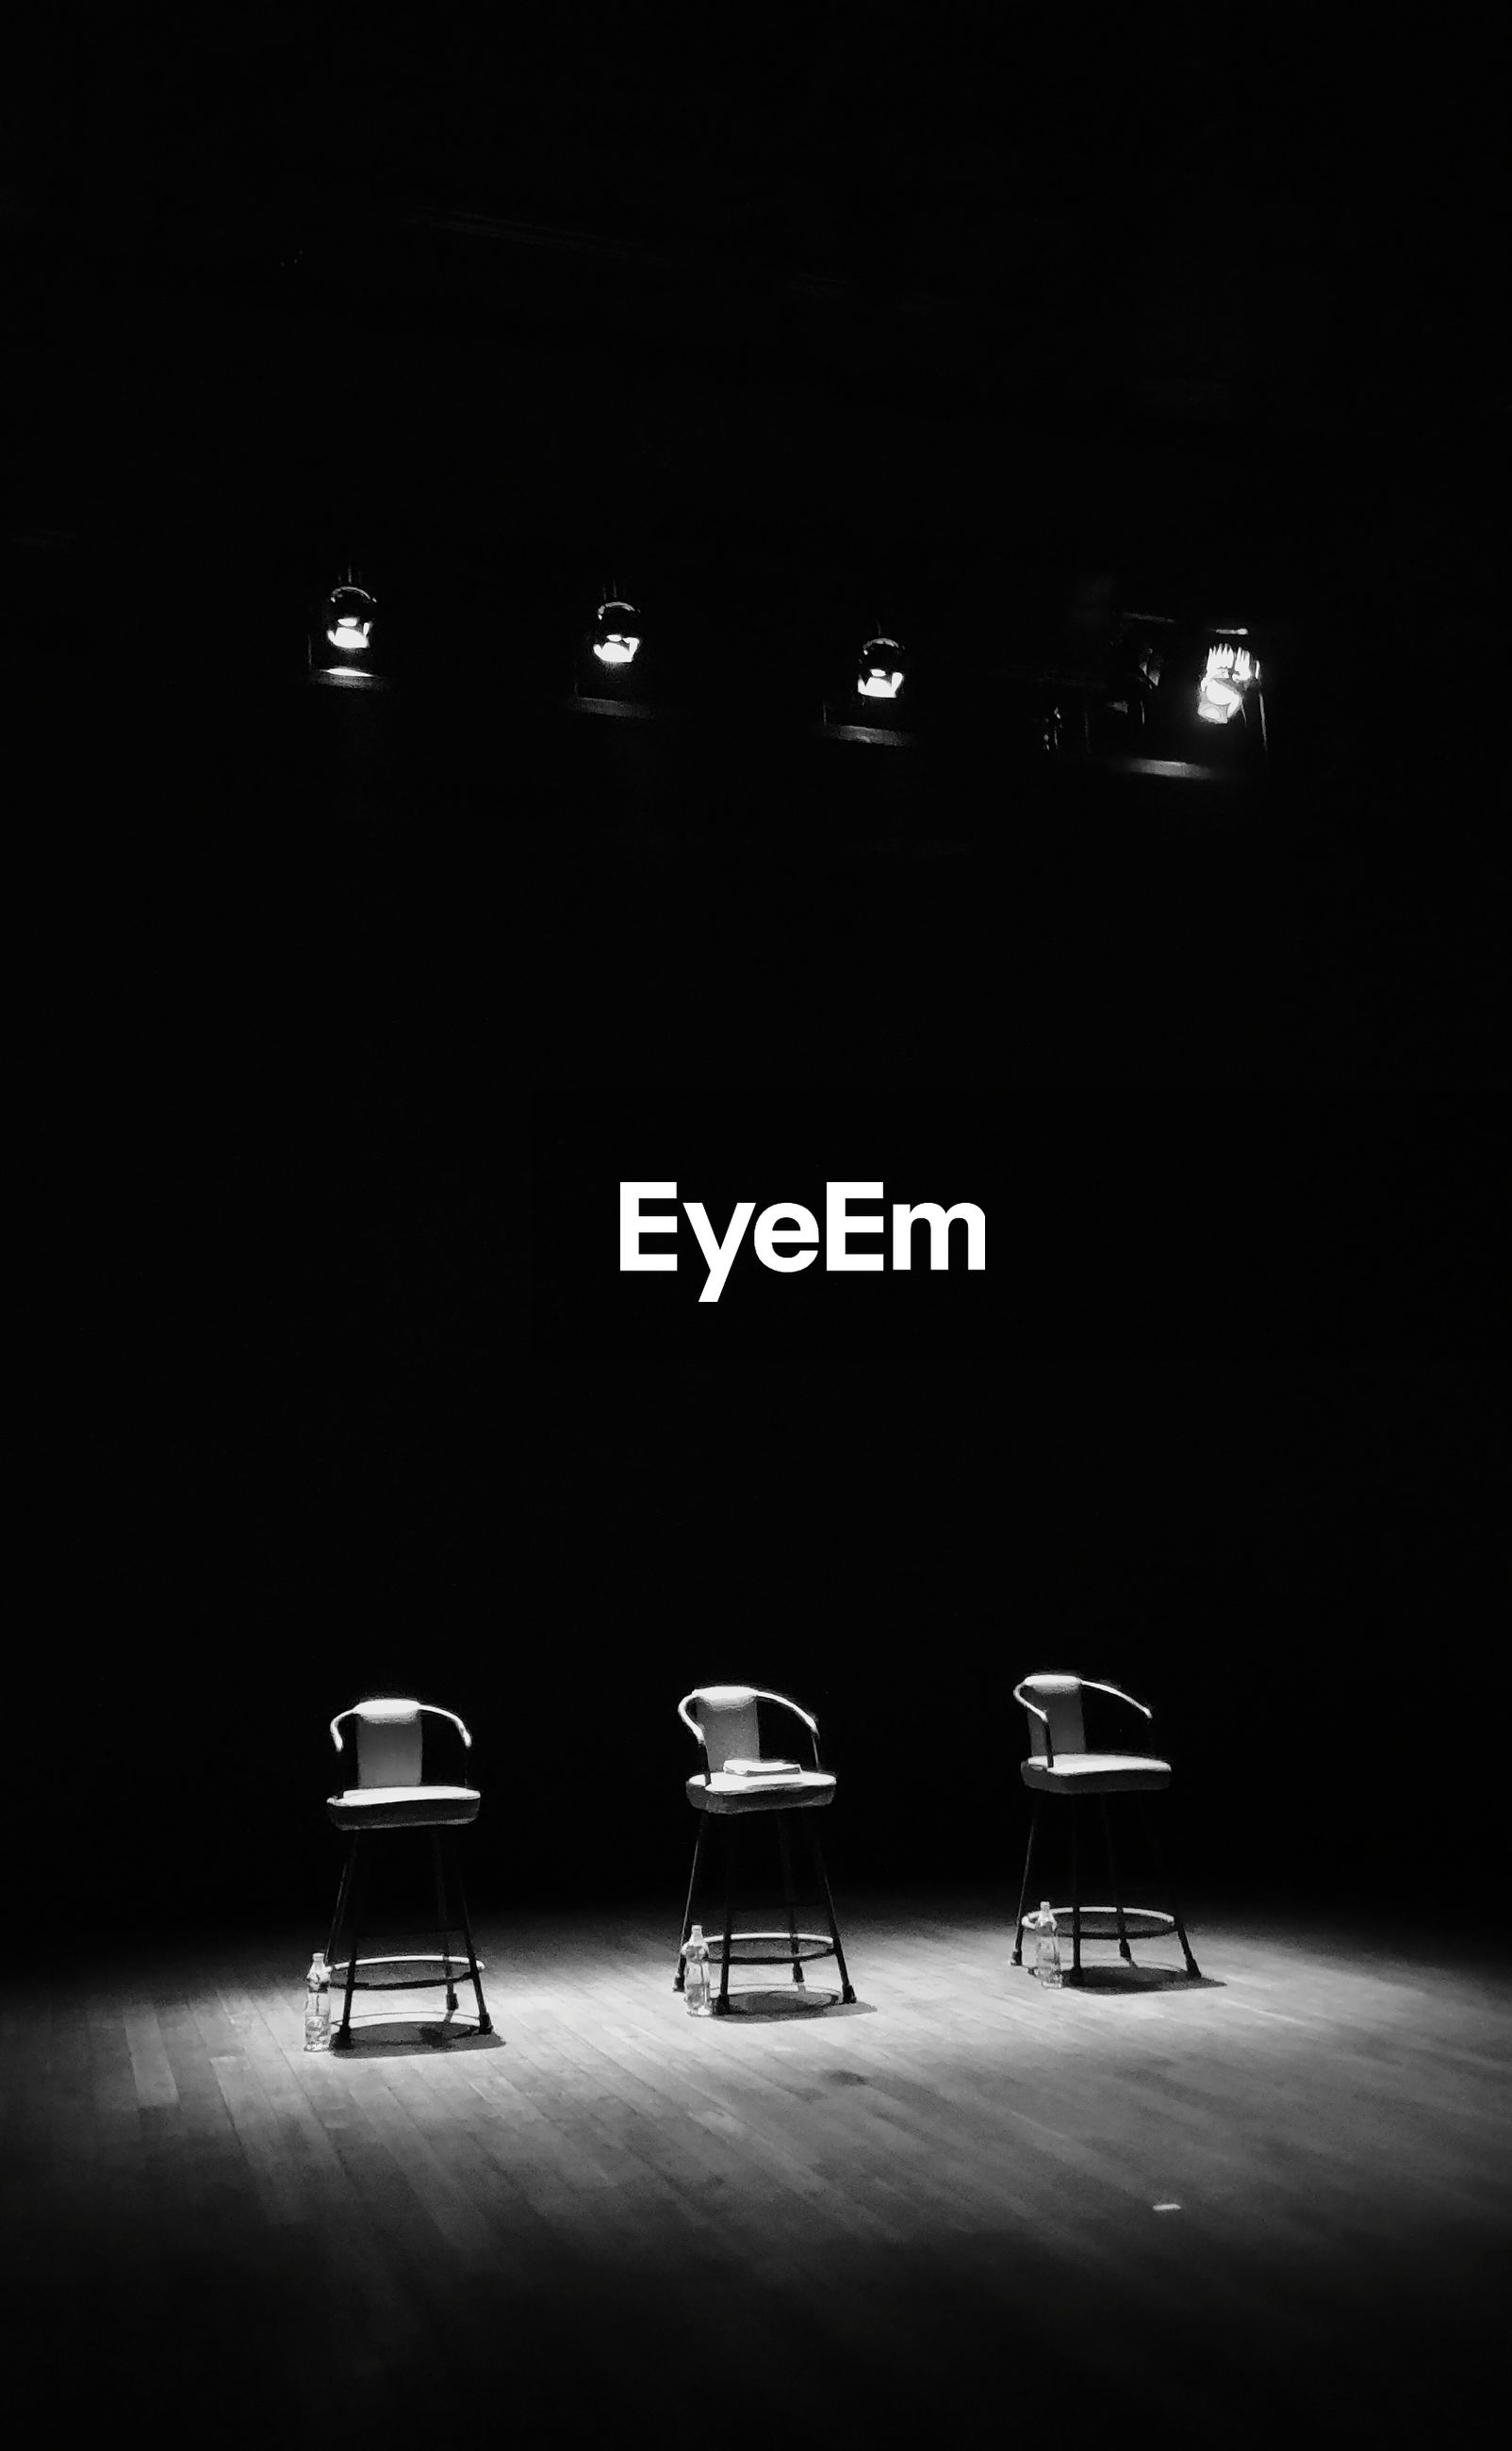 Empty chairs on stage